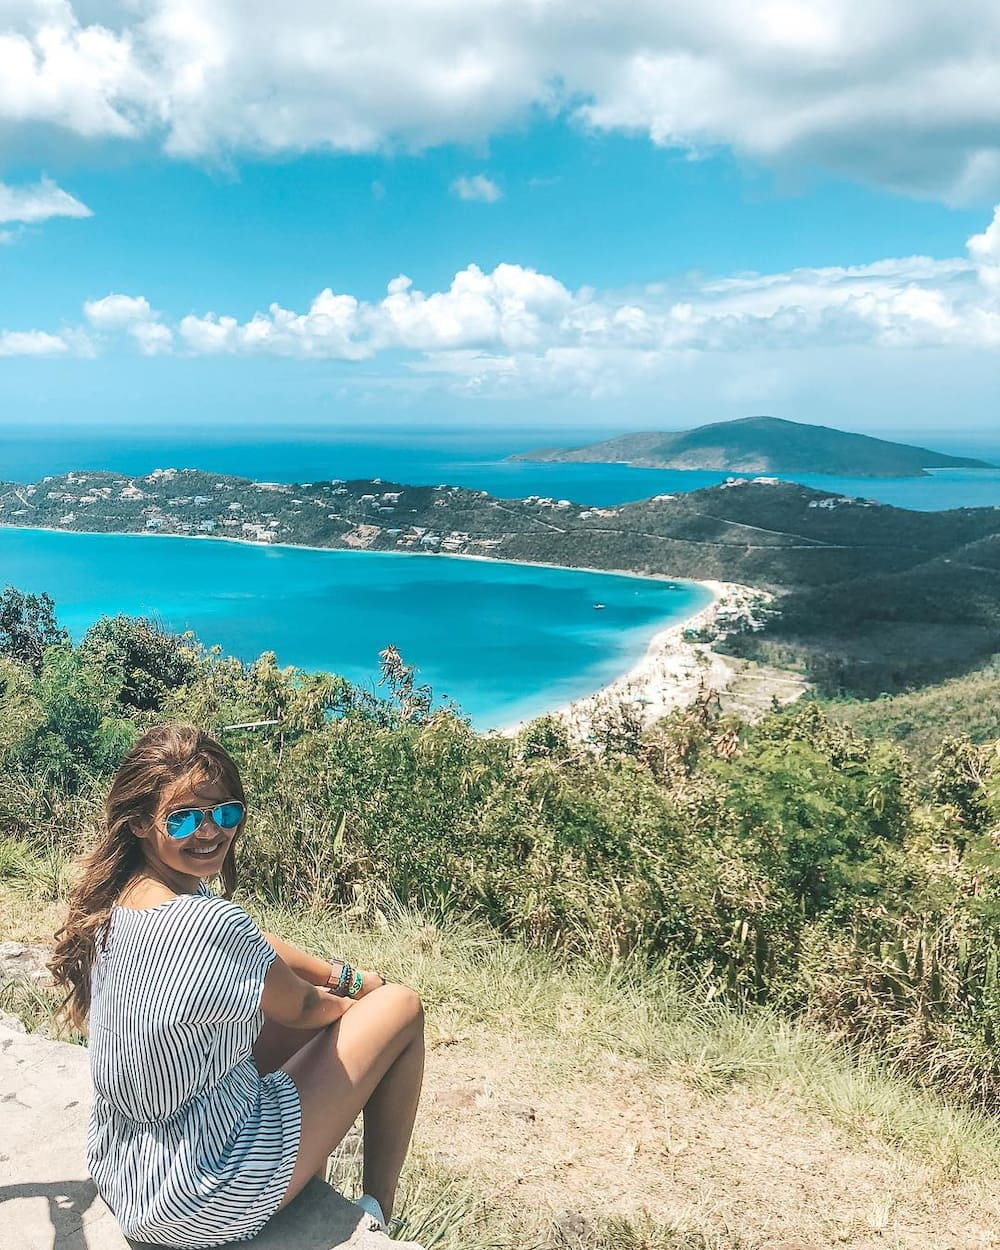 20 amazing pictures of Zoe Brown that proves she is living her best life